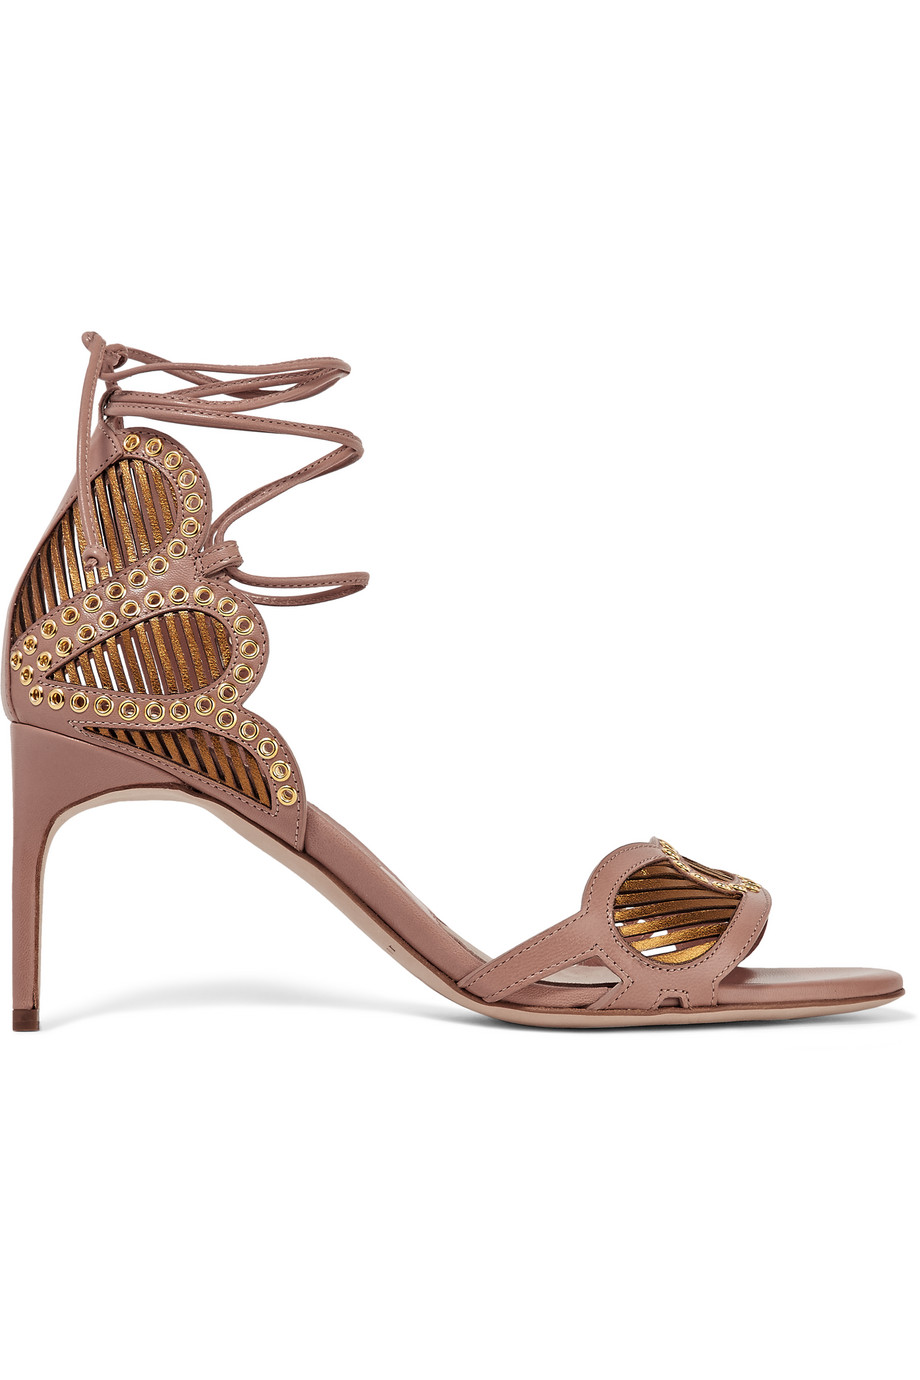 Brian Atwood Gabriela Eyelet-Embellished Leather Sandals, Beige, Women's US Size: 7.5, Size: 38